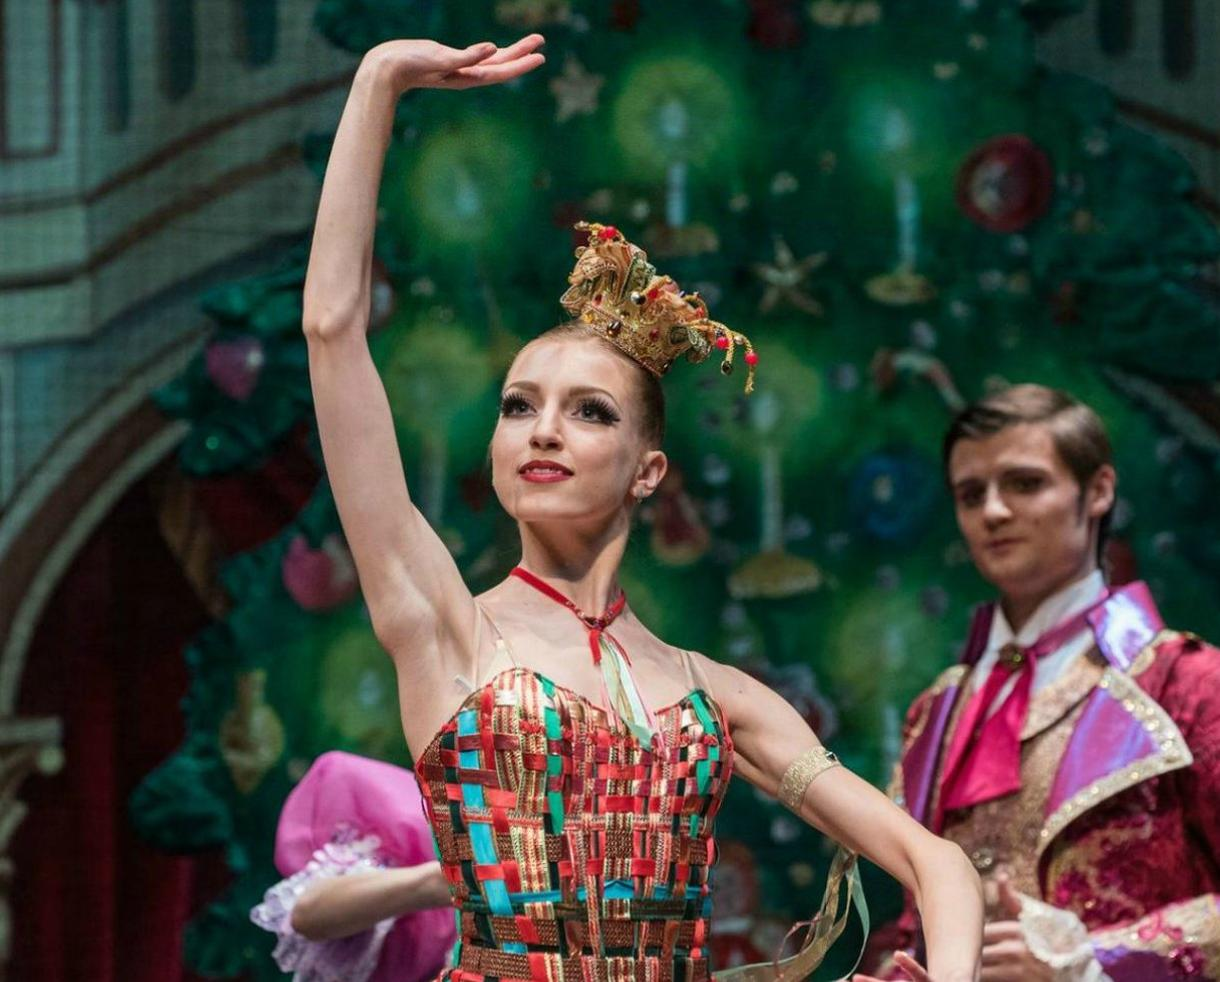 The Moscow Ballet's Great Russian Nutcracker at The Kings Theatre